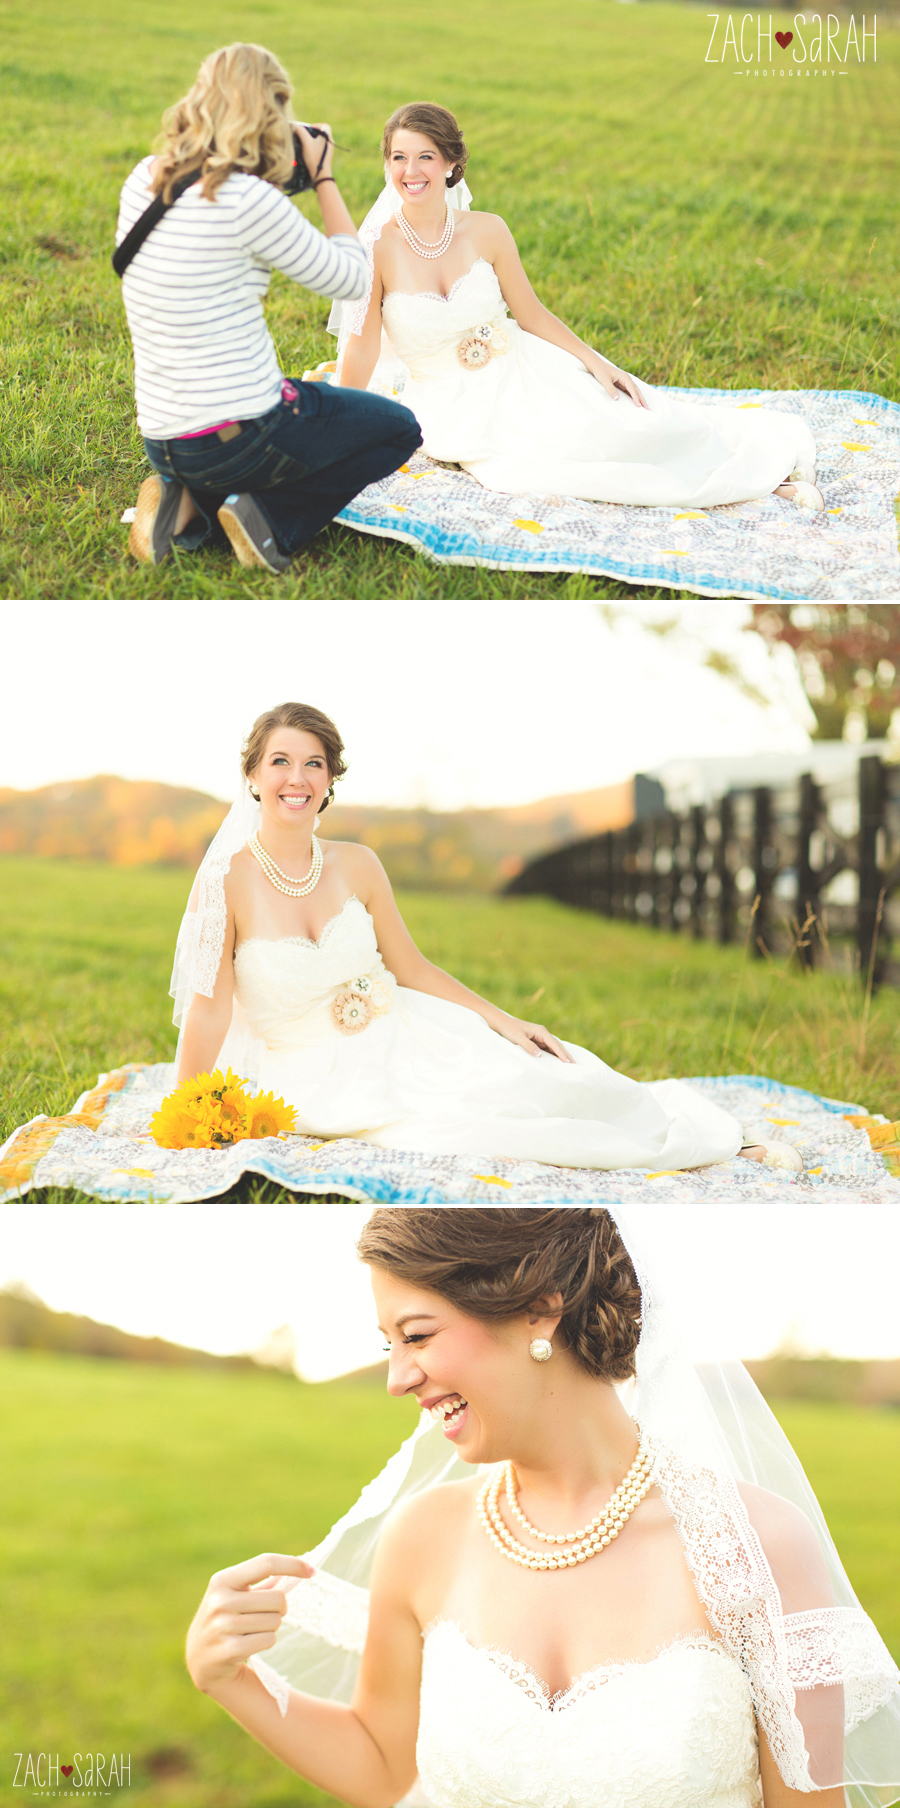 jill-bridals-cookeville-tennessee-zachandsarah-photography